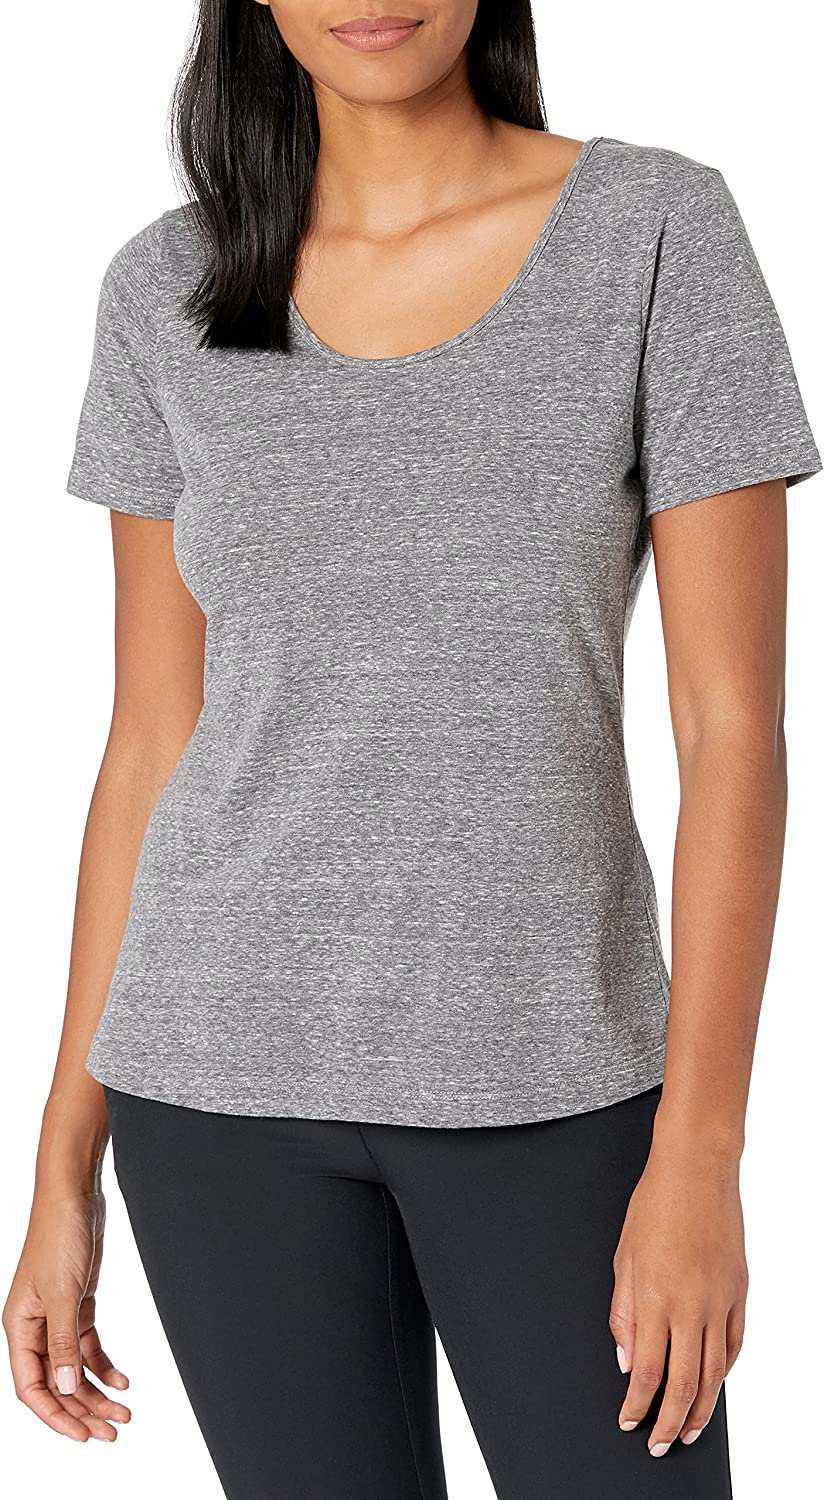 Aventura Manufacturer direct delivery Women's Dharma Top Max 83% OFF Sleeve Short